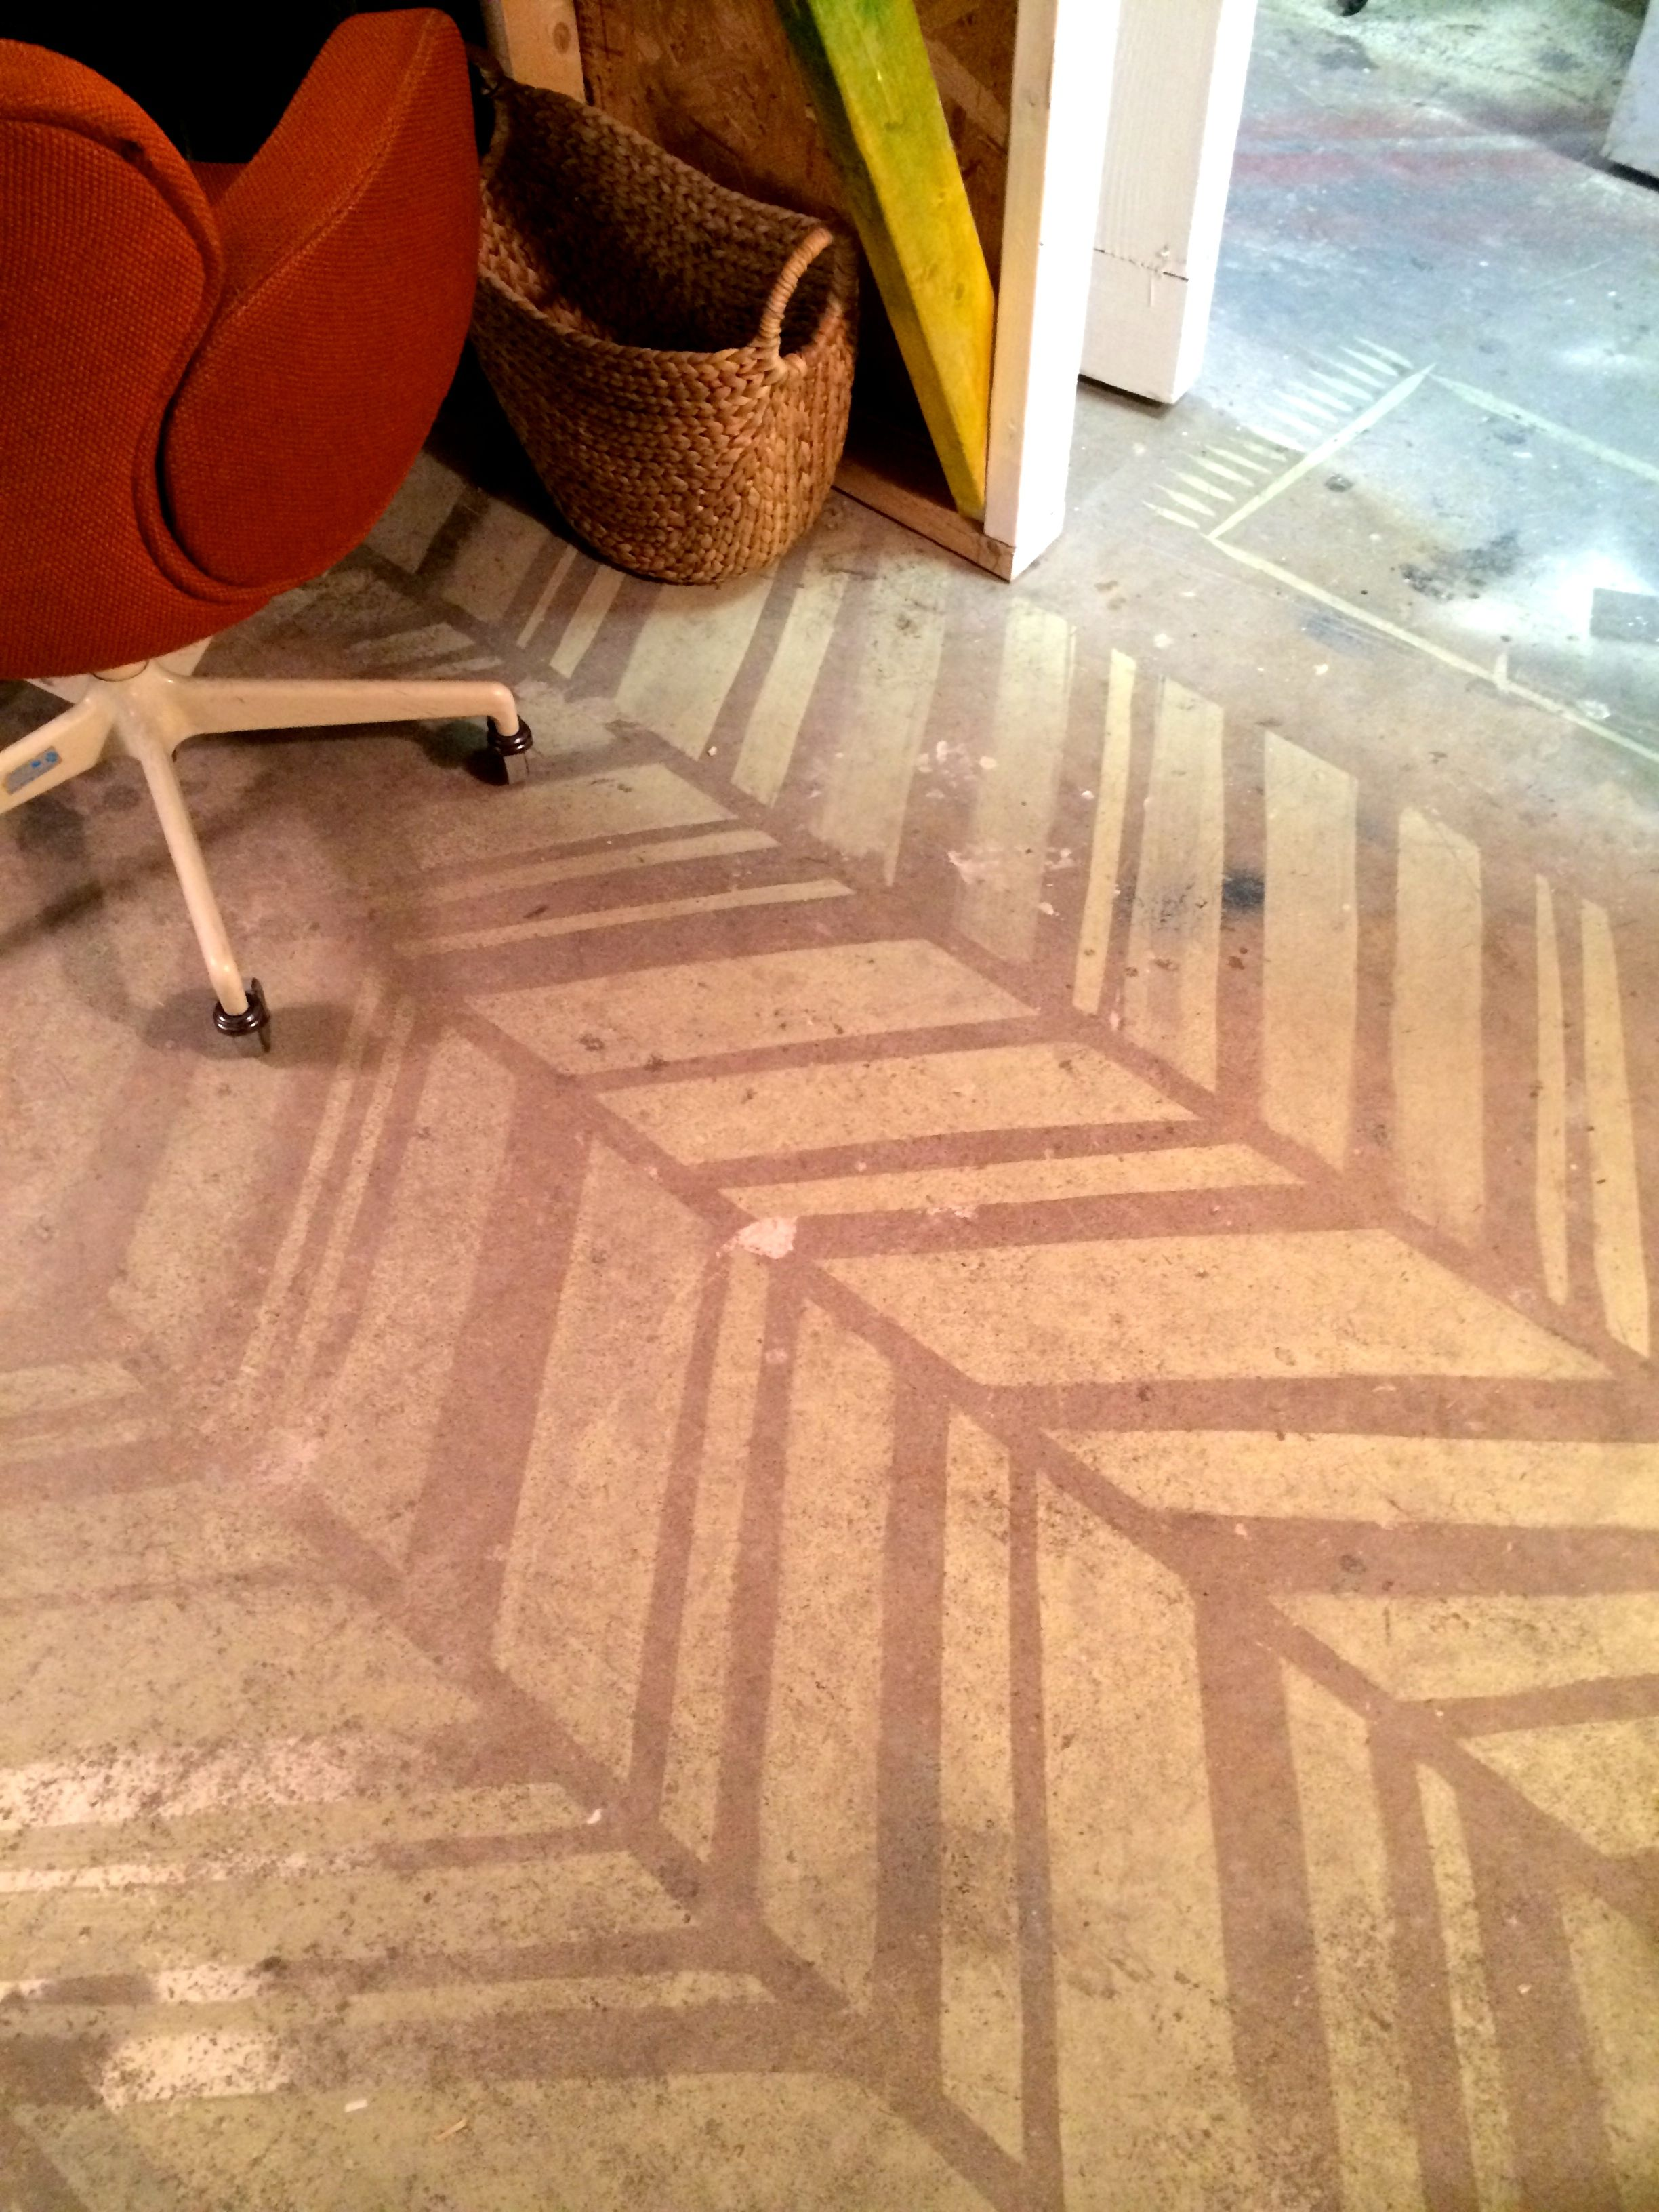 Distressed Painted Concrete By Christy Baker With Pigment Painted Floors Painted Floor Contemporary Rug